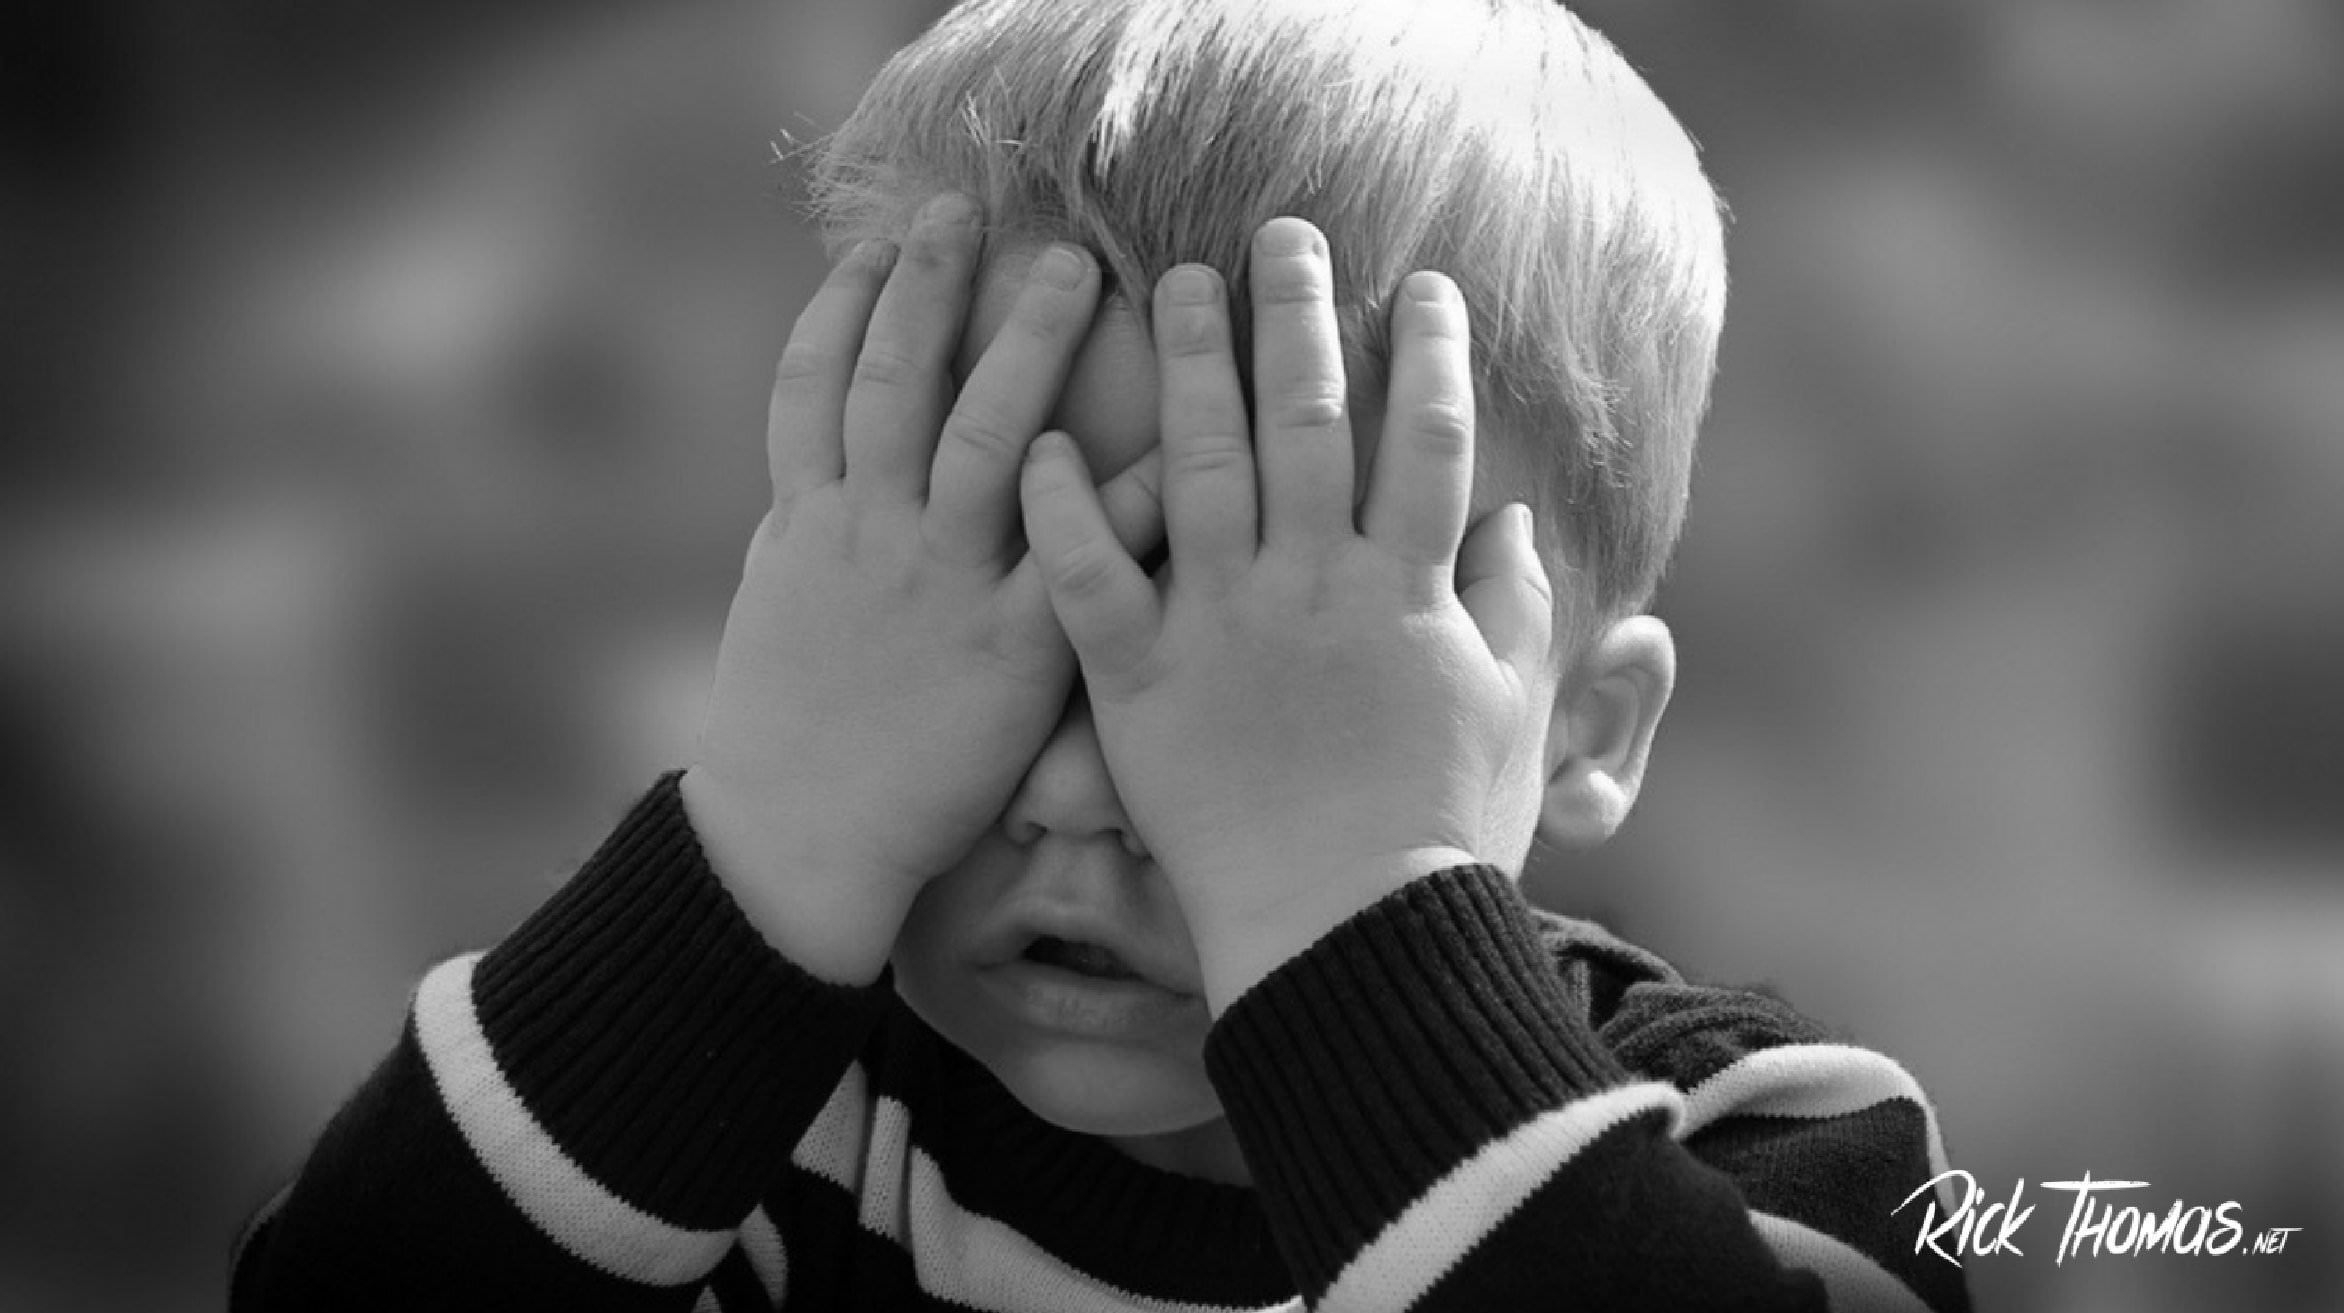 RMlogo How To Determine the Cause and Solution of a Child's Behavior_